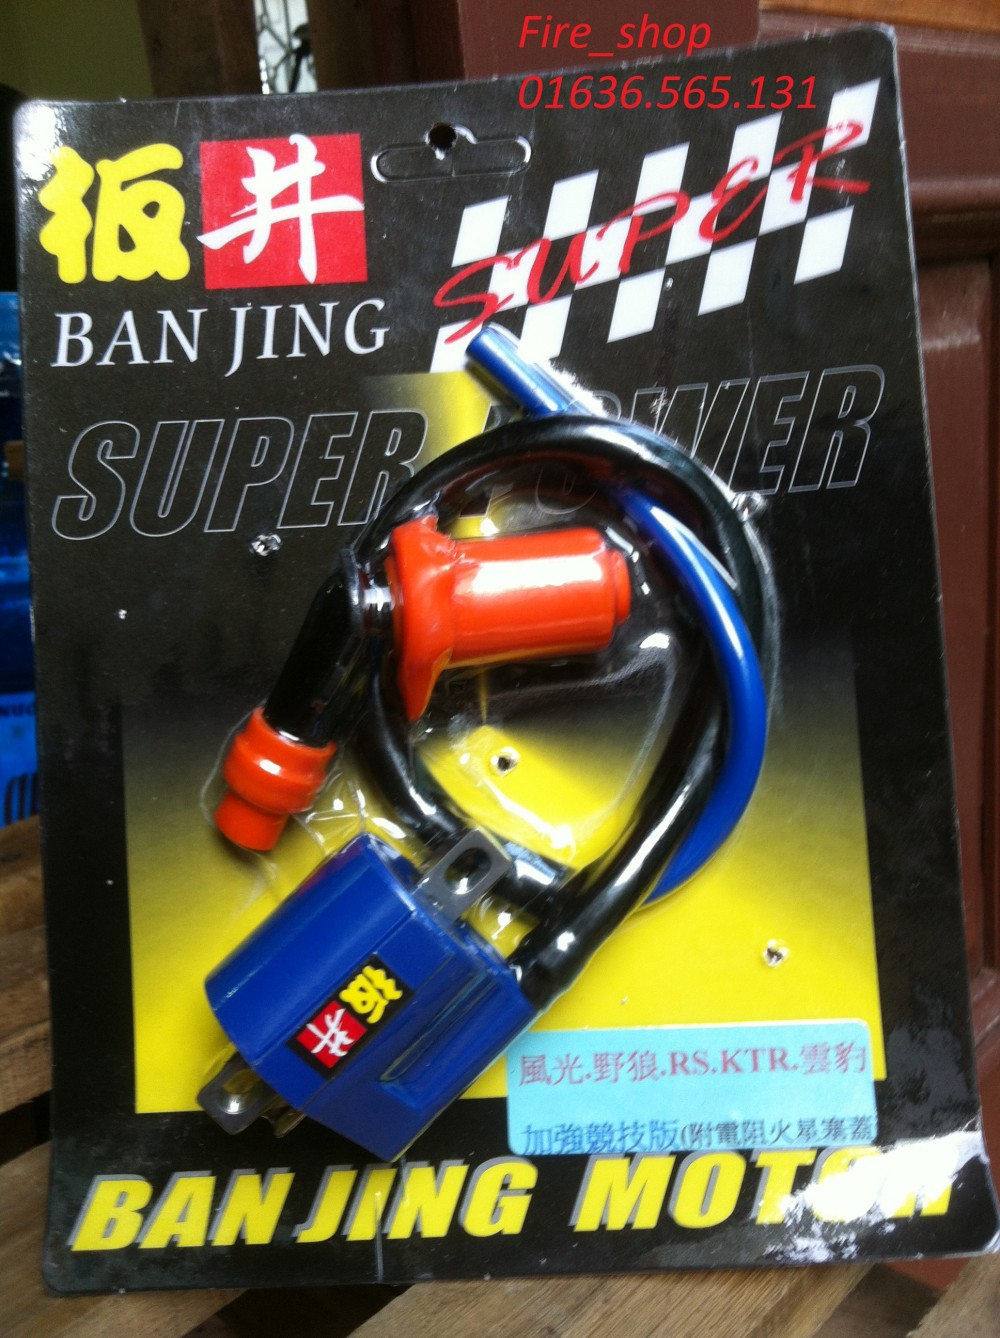 IC banjing horse power racing tim cho Exciter Dream Wave Fire_shop - 6